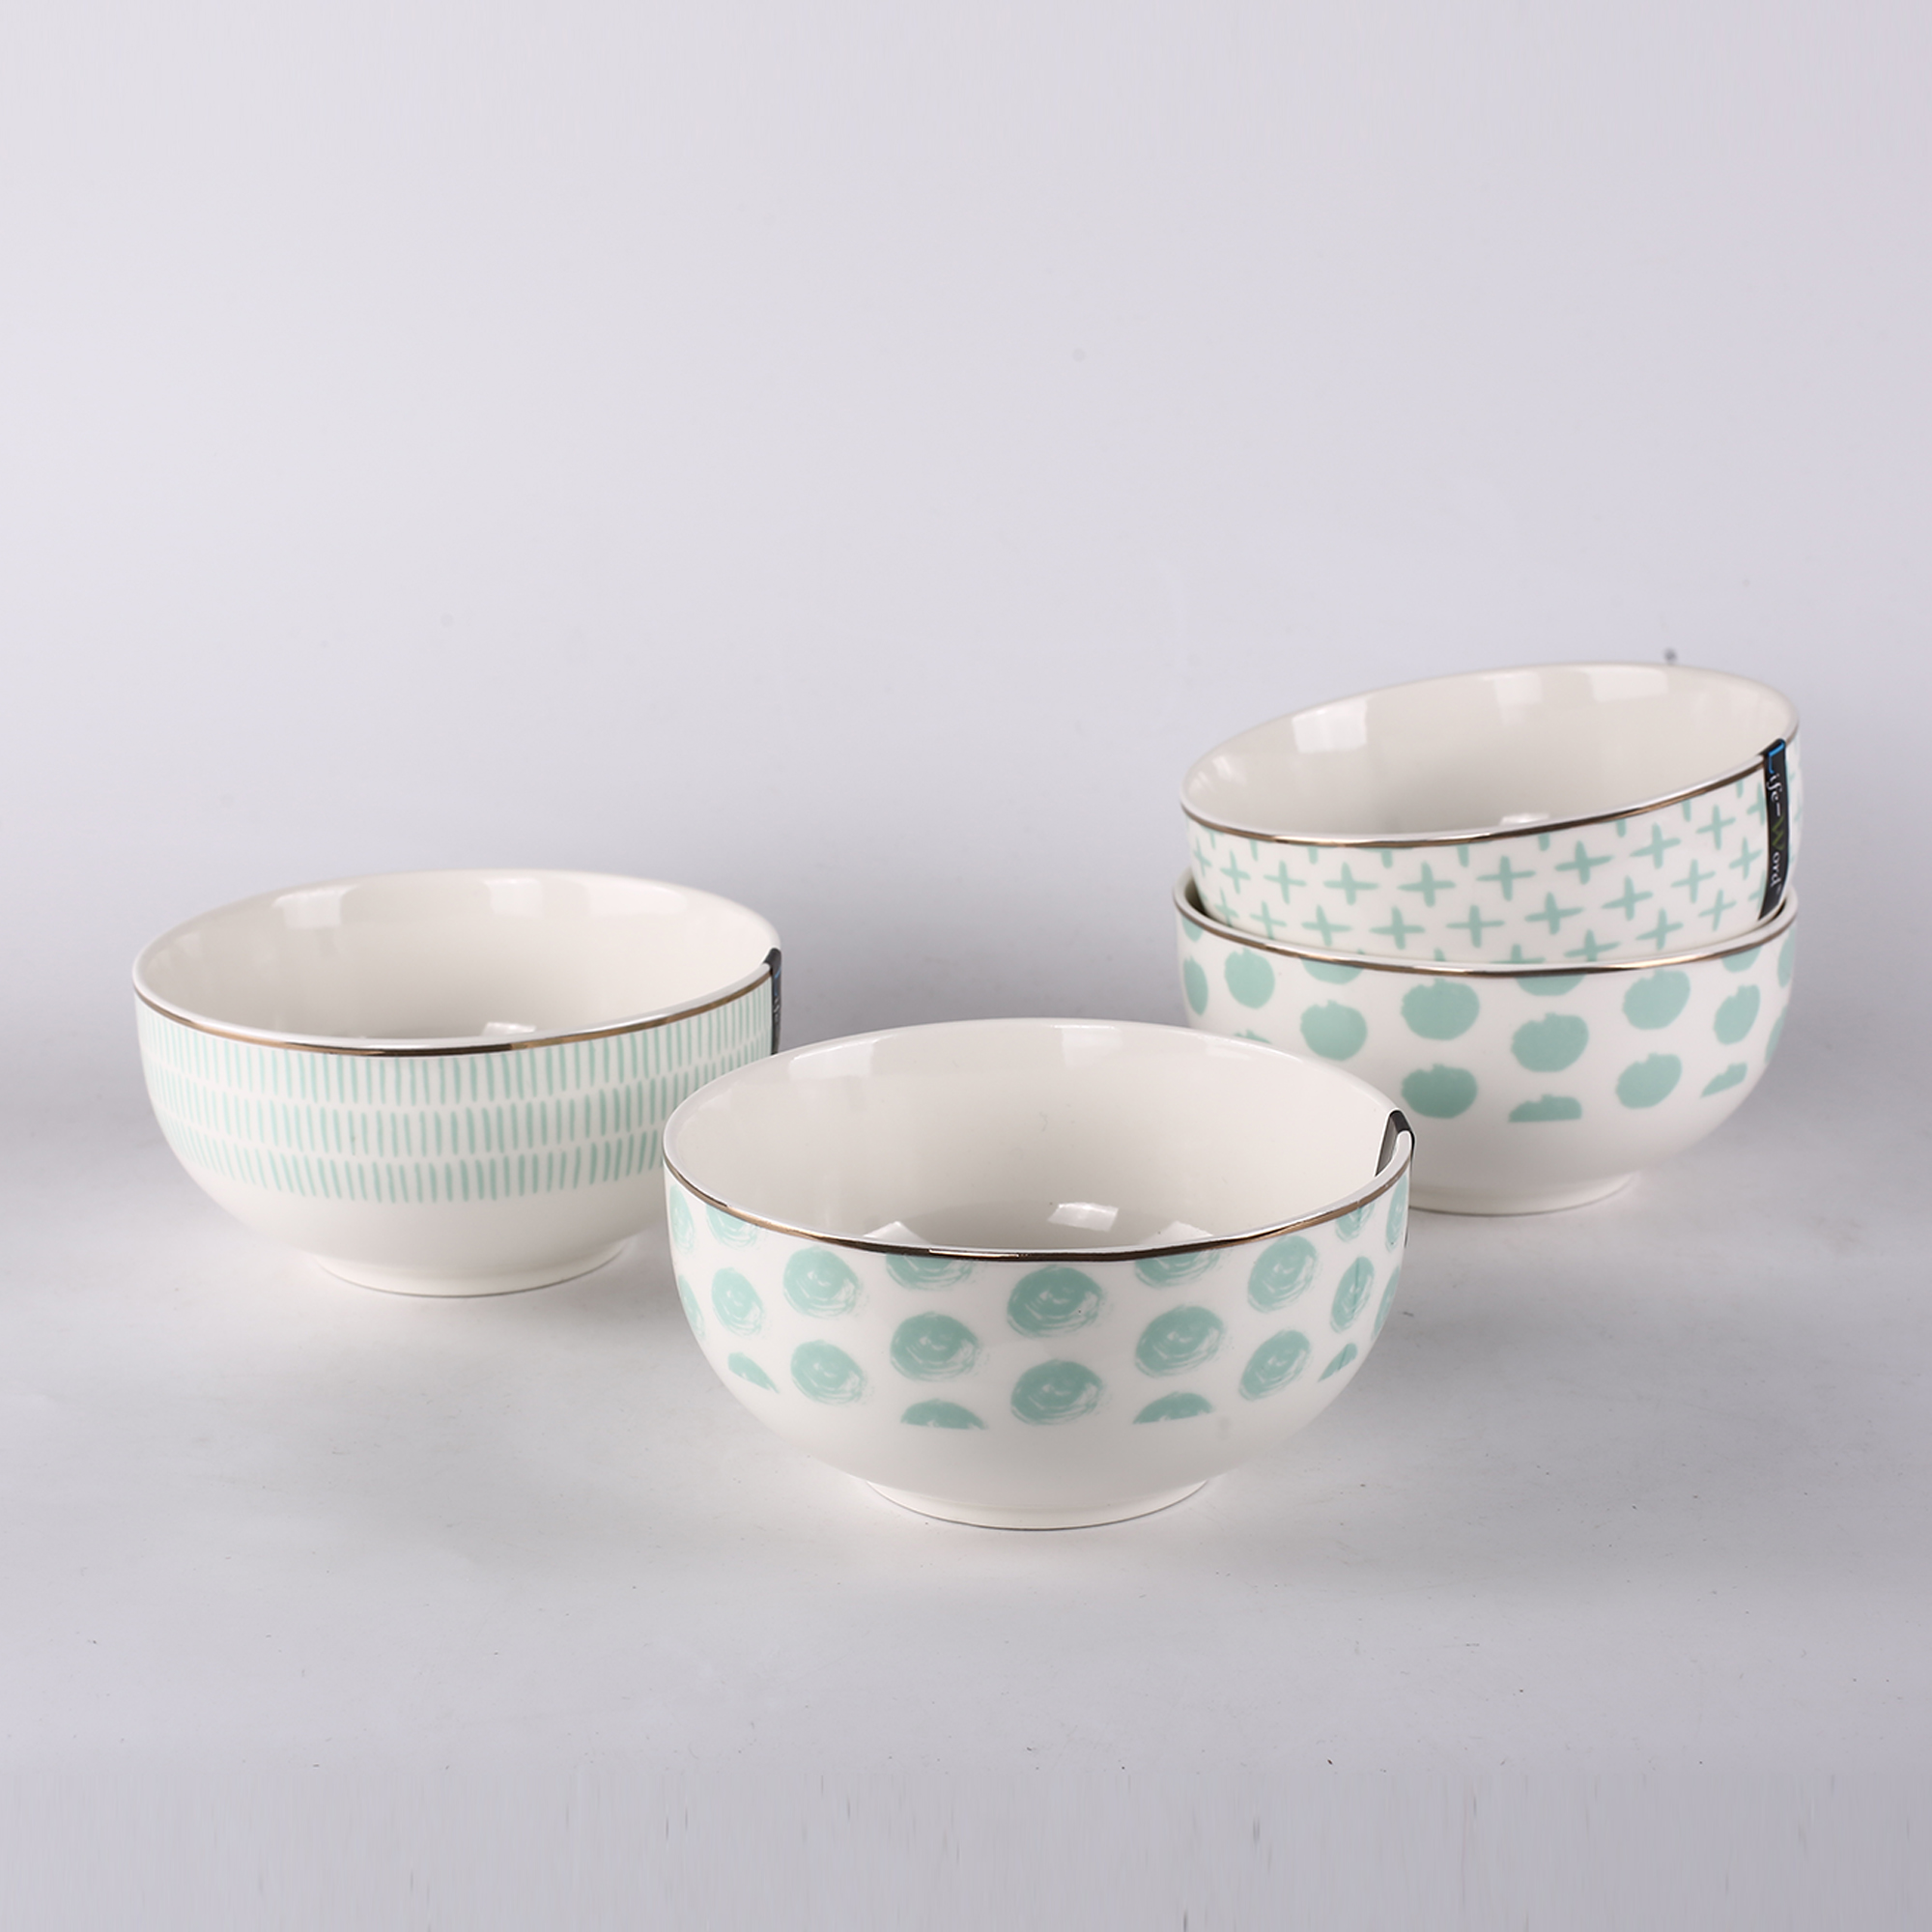 2019 hot selling new pattern light green plain white porcelain dinnerware set bulk cheap ceramic salad bowls